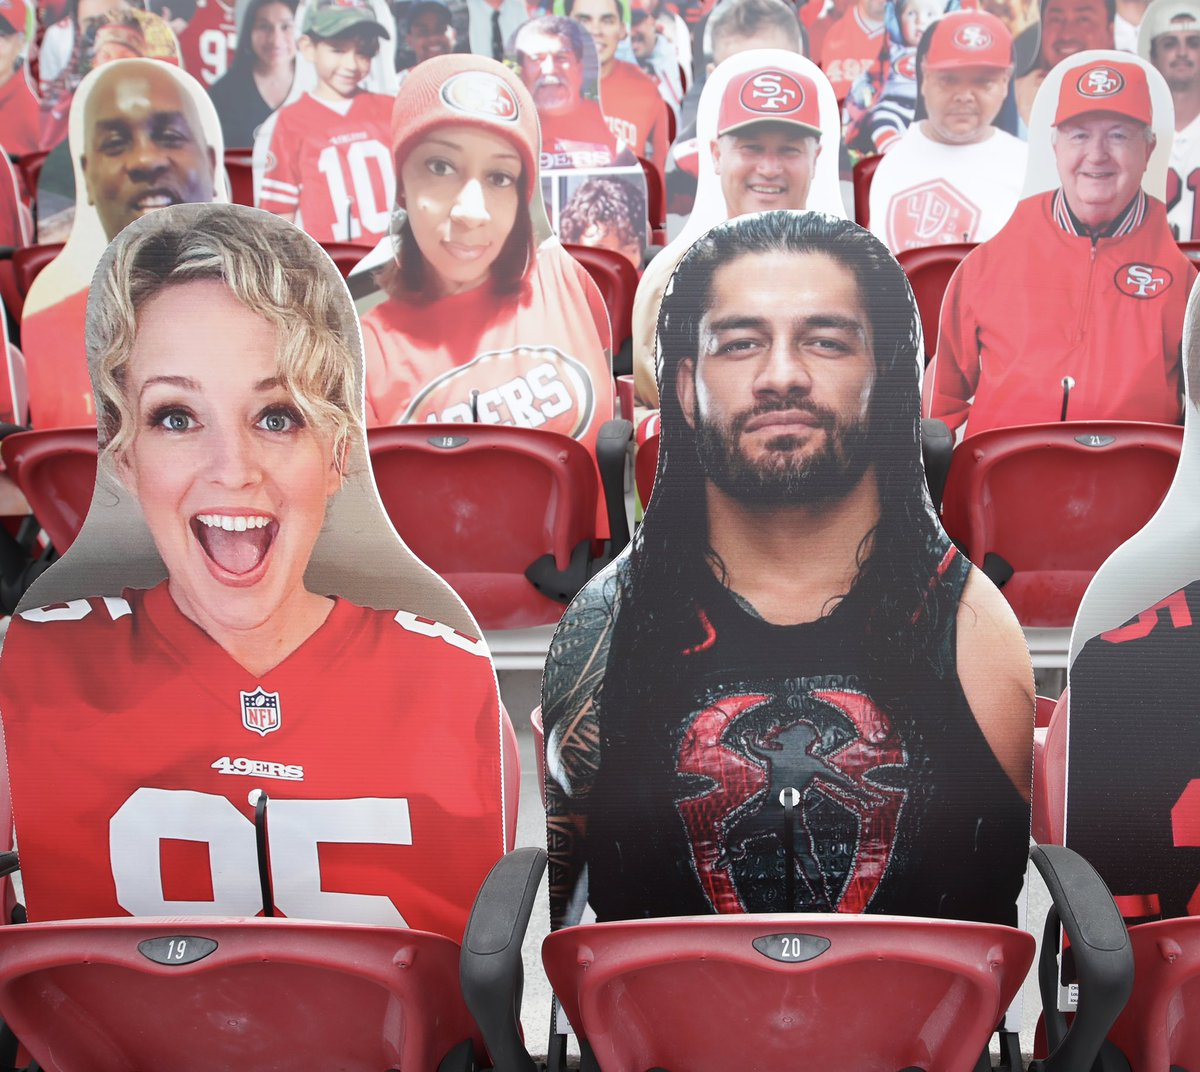 @camcountry's photo on Niners